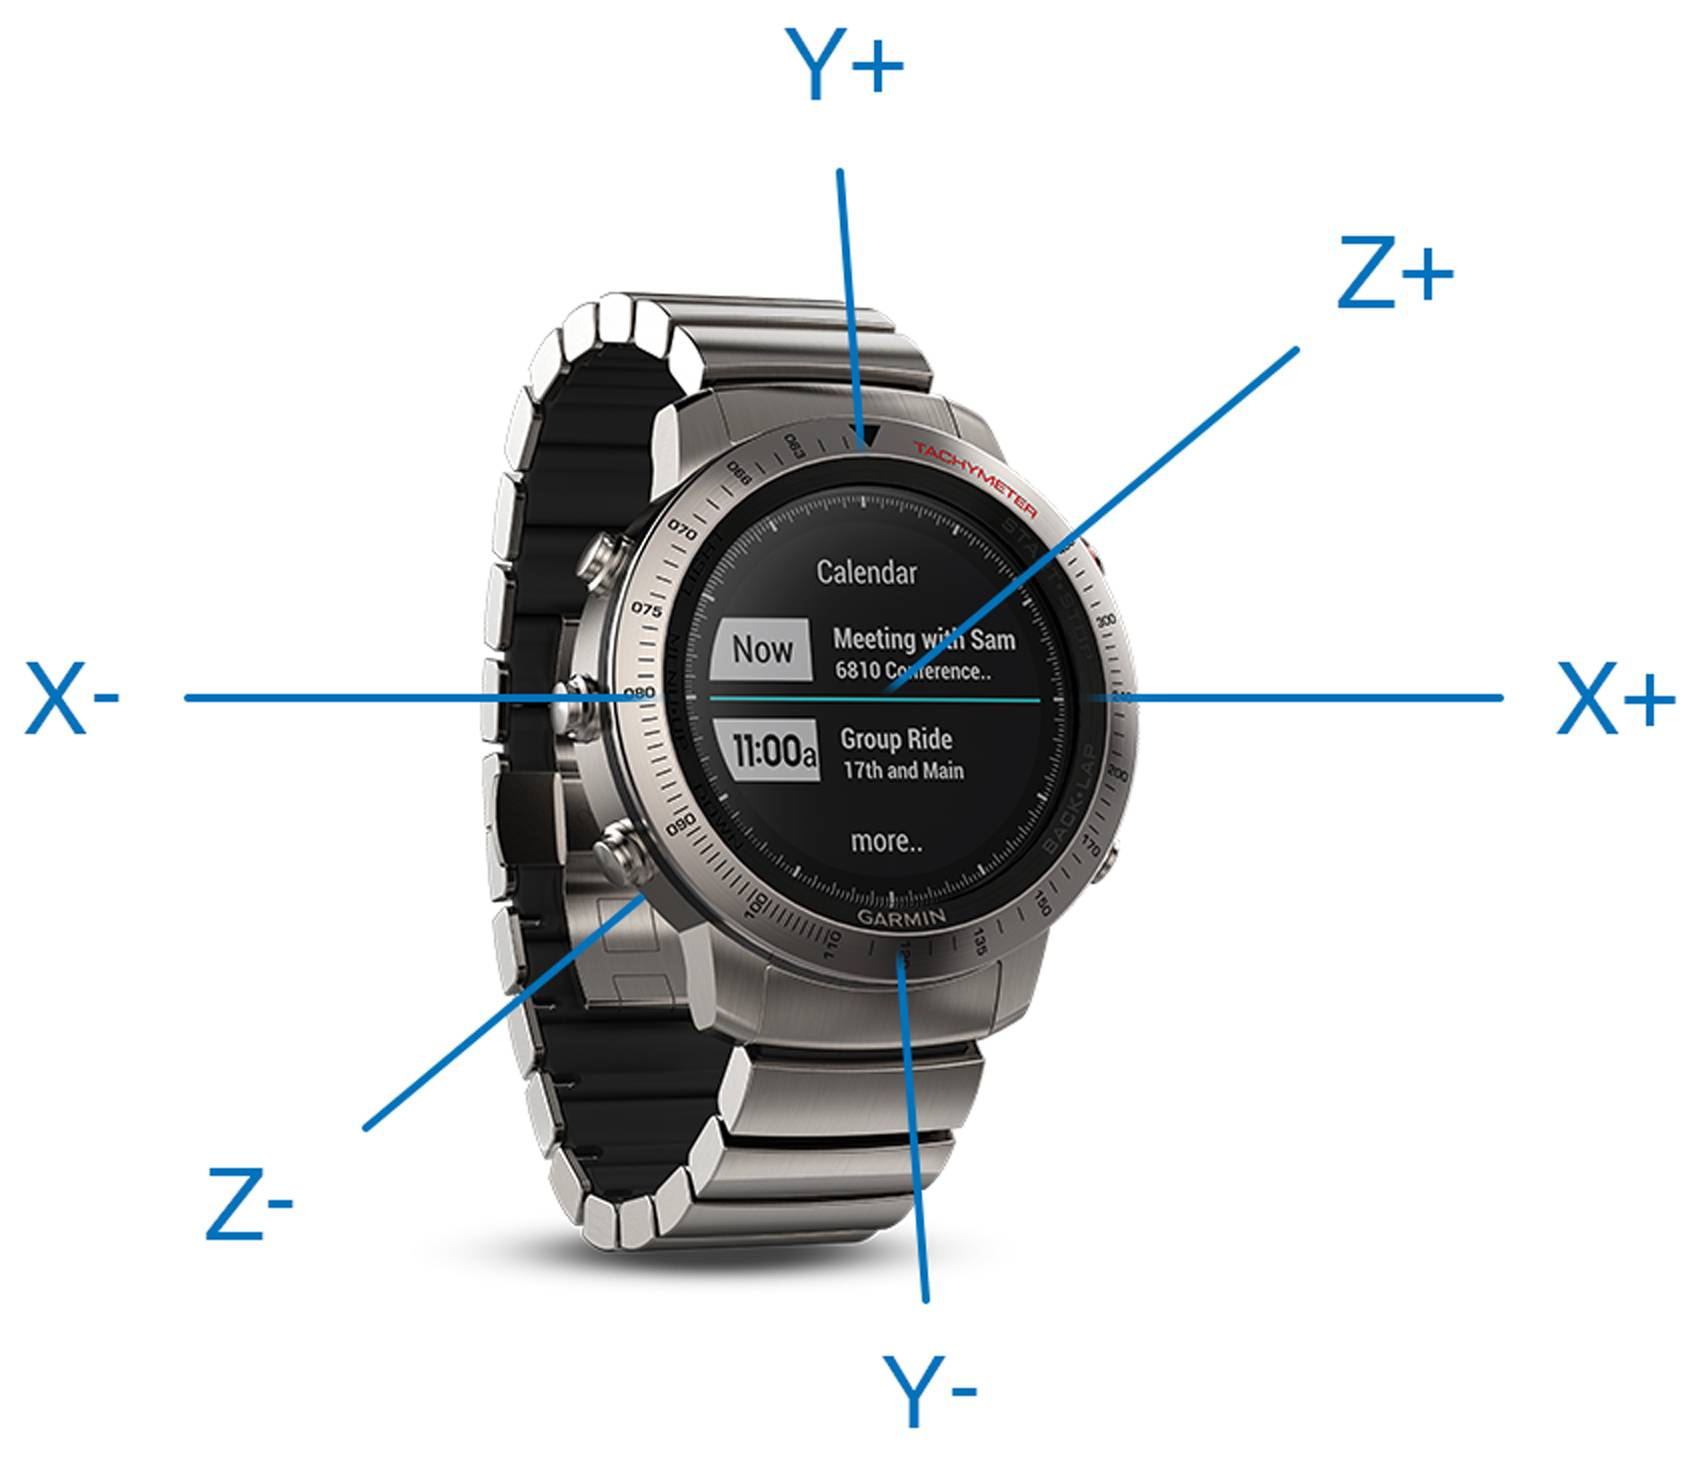 How to Develop Application Metrics with Garmin Connect IQ